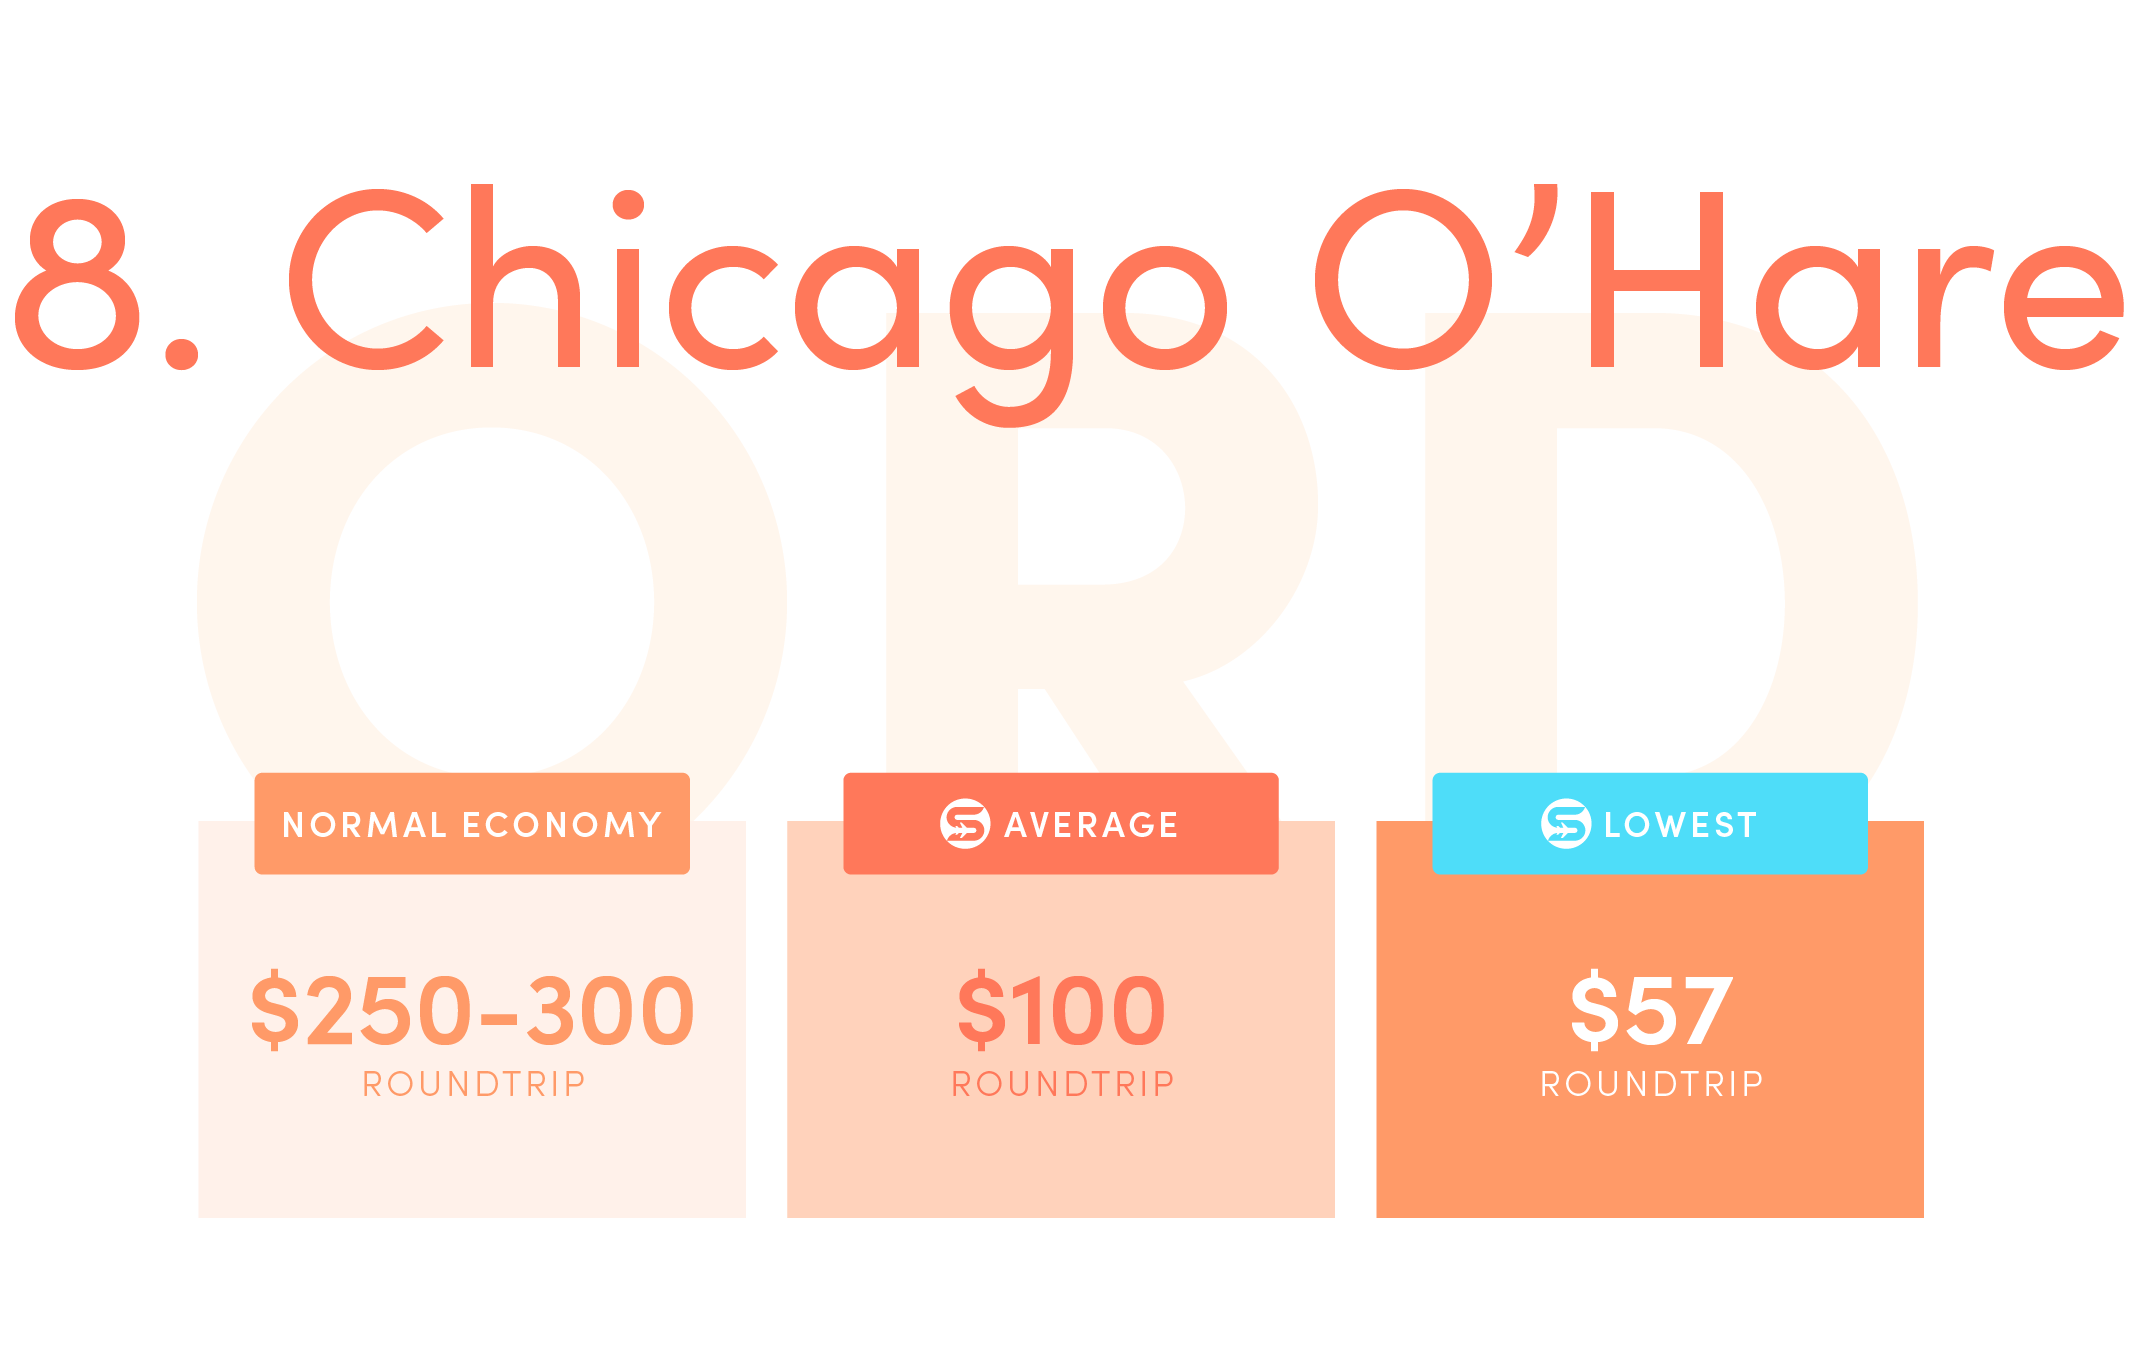 Chicago O'Hare (ORD).Normal economy price from the US: $250-$300 roundtrip.Average Scott's Cheap Flights economy price: $100 roundtrip.Lowest Scott's Cheap Flights price in 2021: $57 roundtrip.